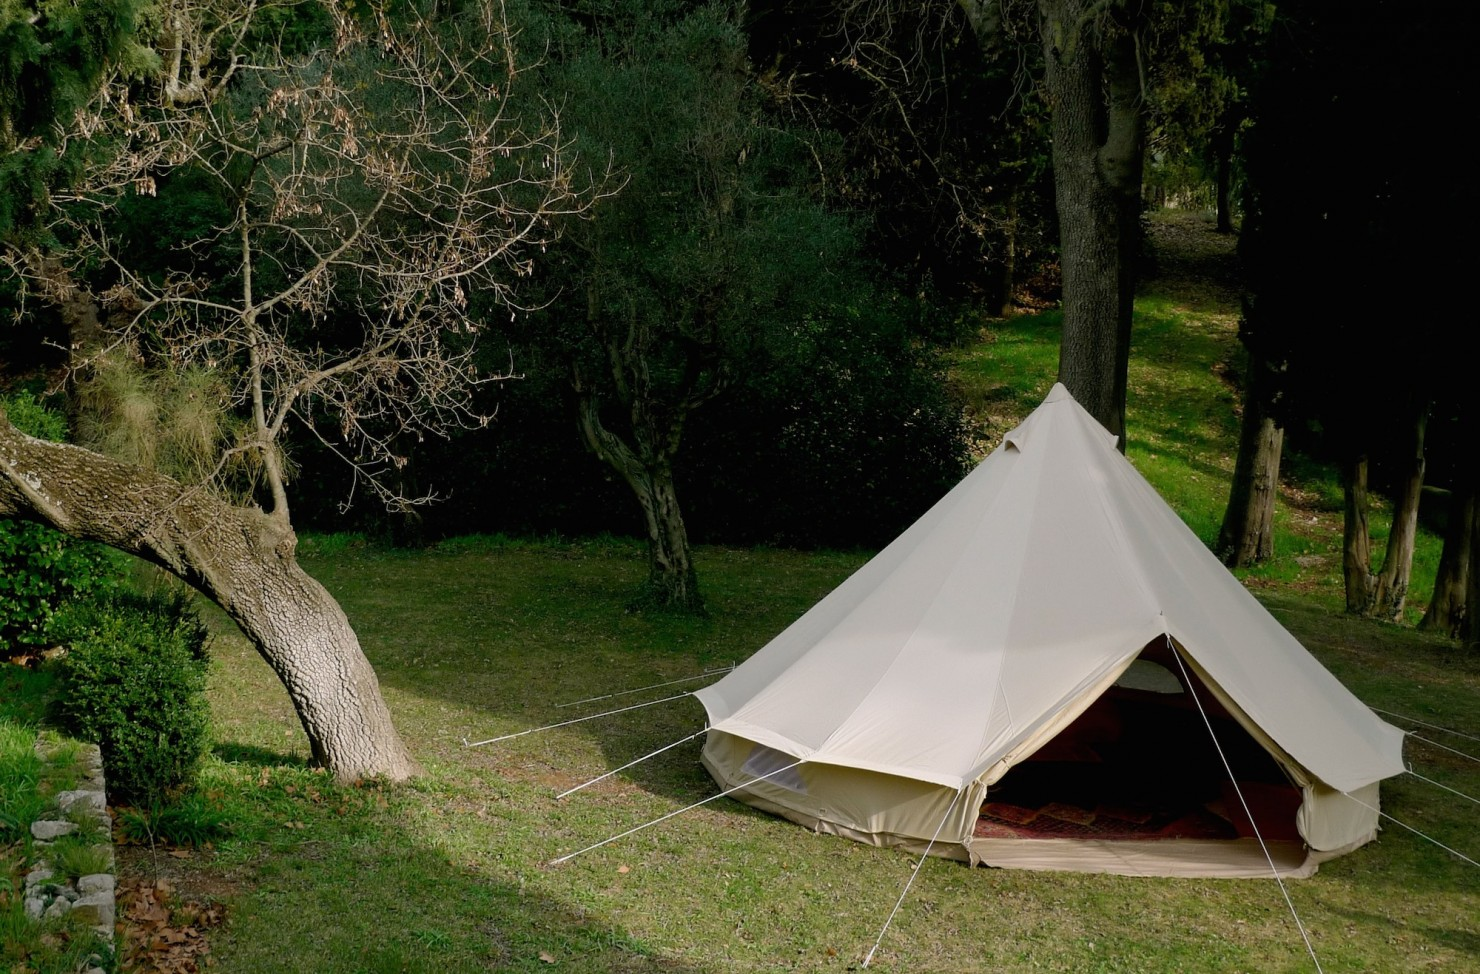 The Sibley 400 Deluxe Tent 4